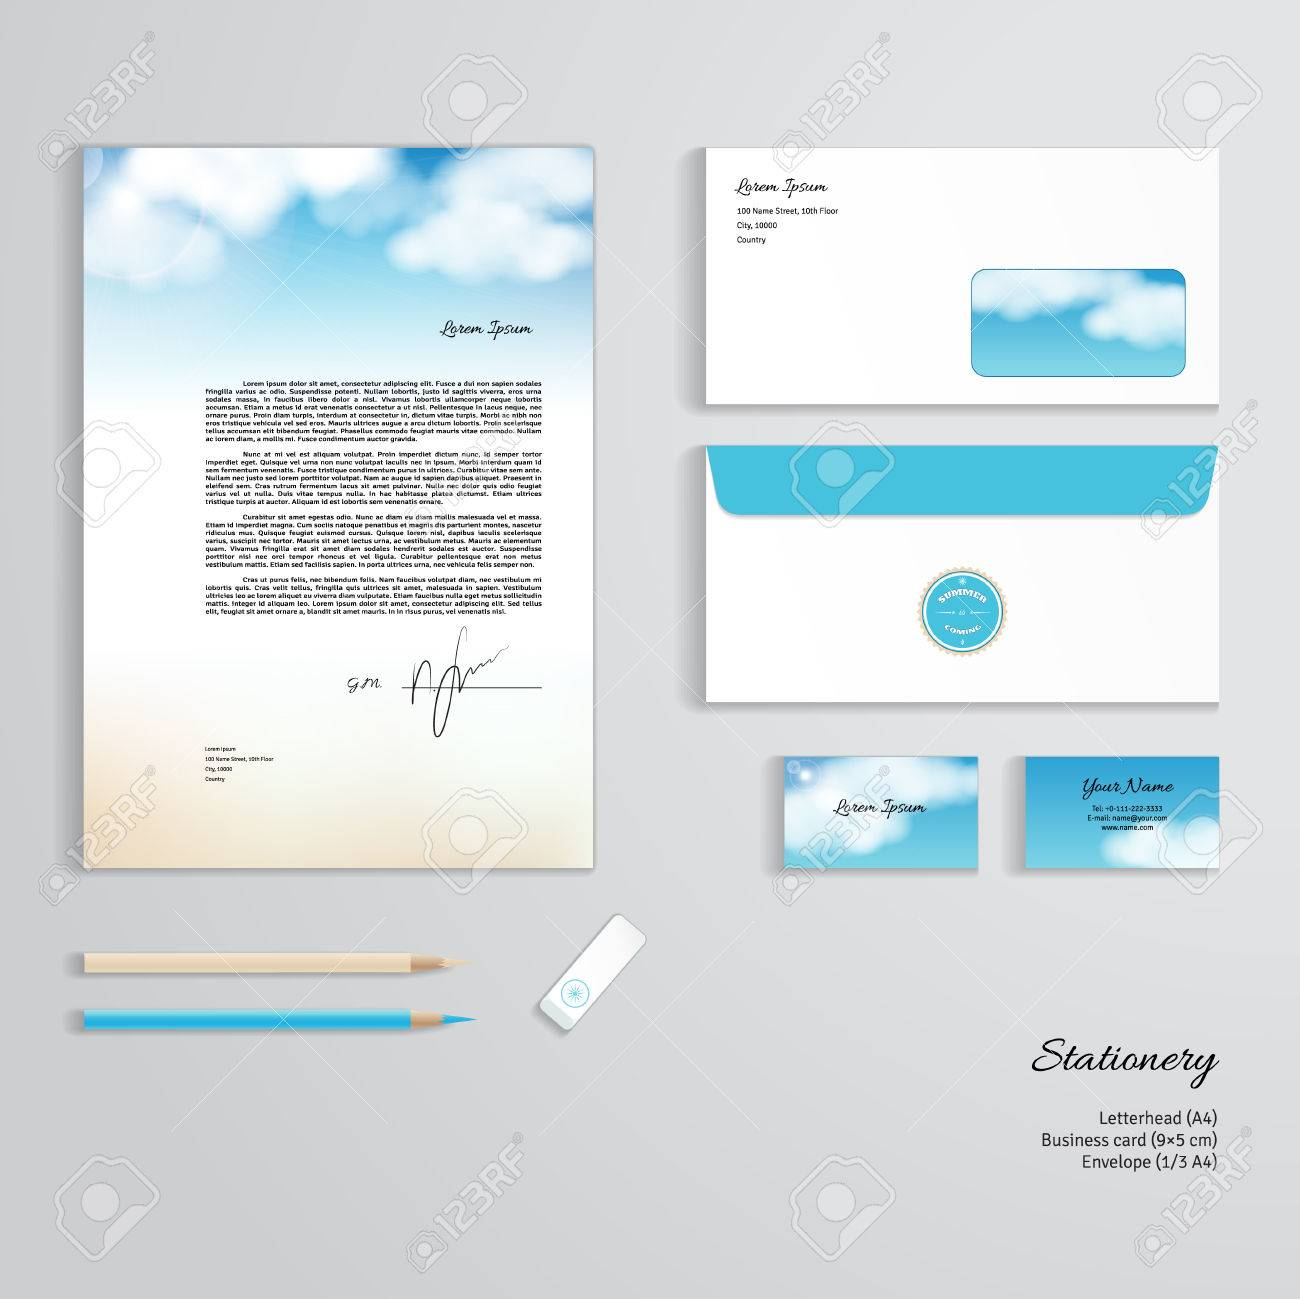 Vector corporate identity templates sky clouds sunshine and vector vector corporate identity templates sky clouds sunshine and sandy beach letterhead envelope business card pencils eraser accmission Choice Image